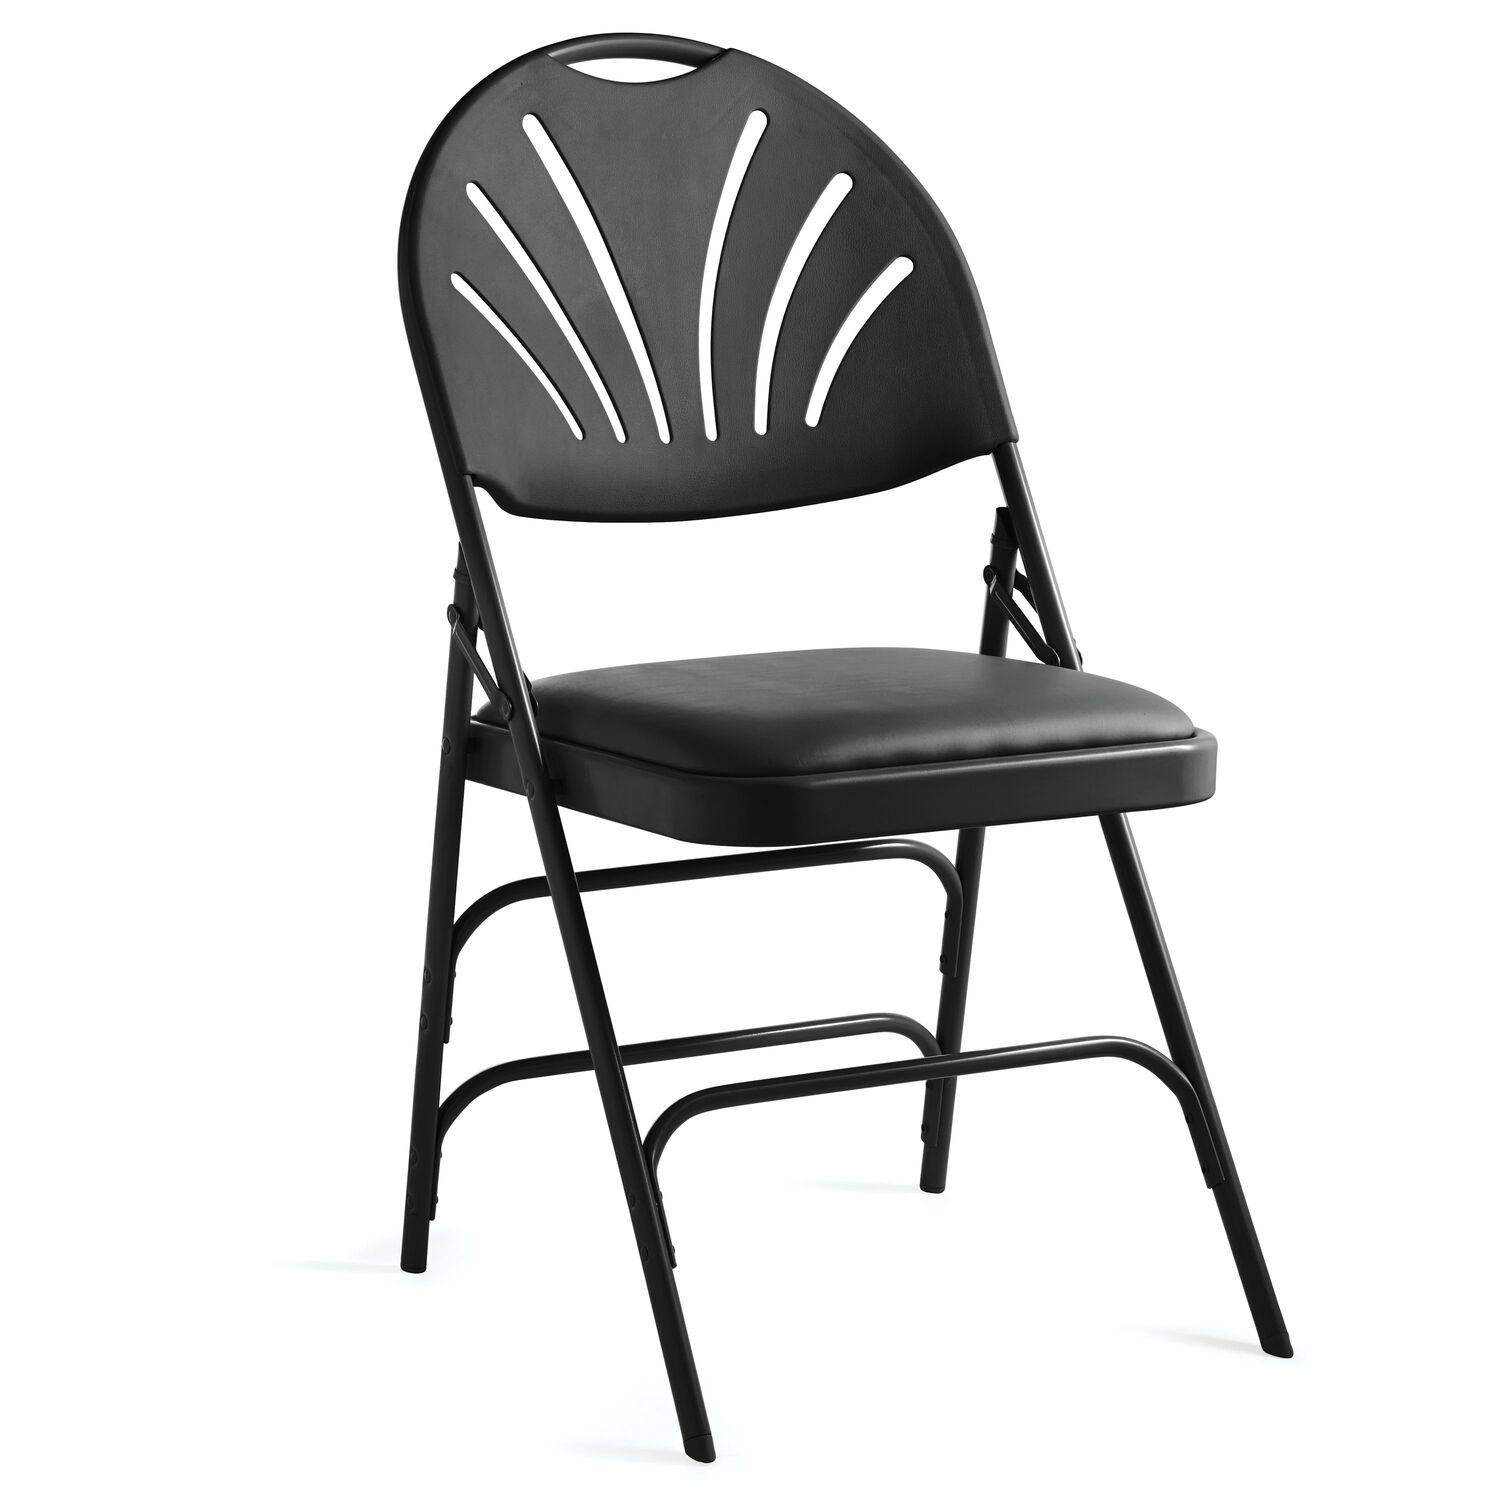 Unique Samsonite Folding Chair Elegant